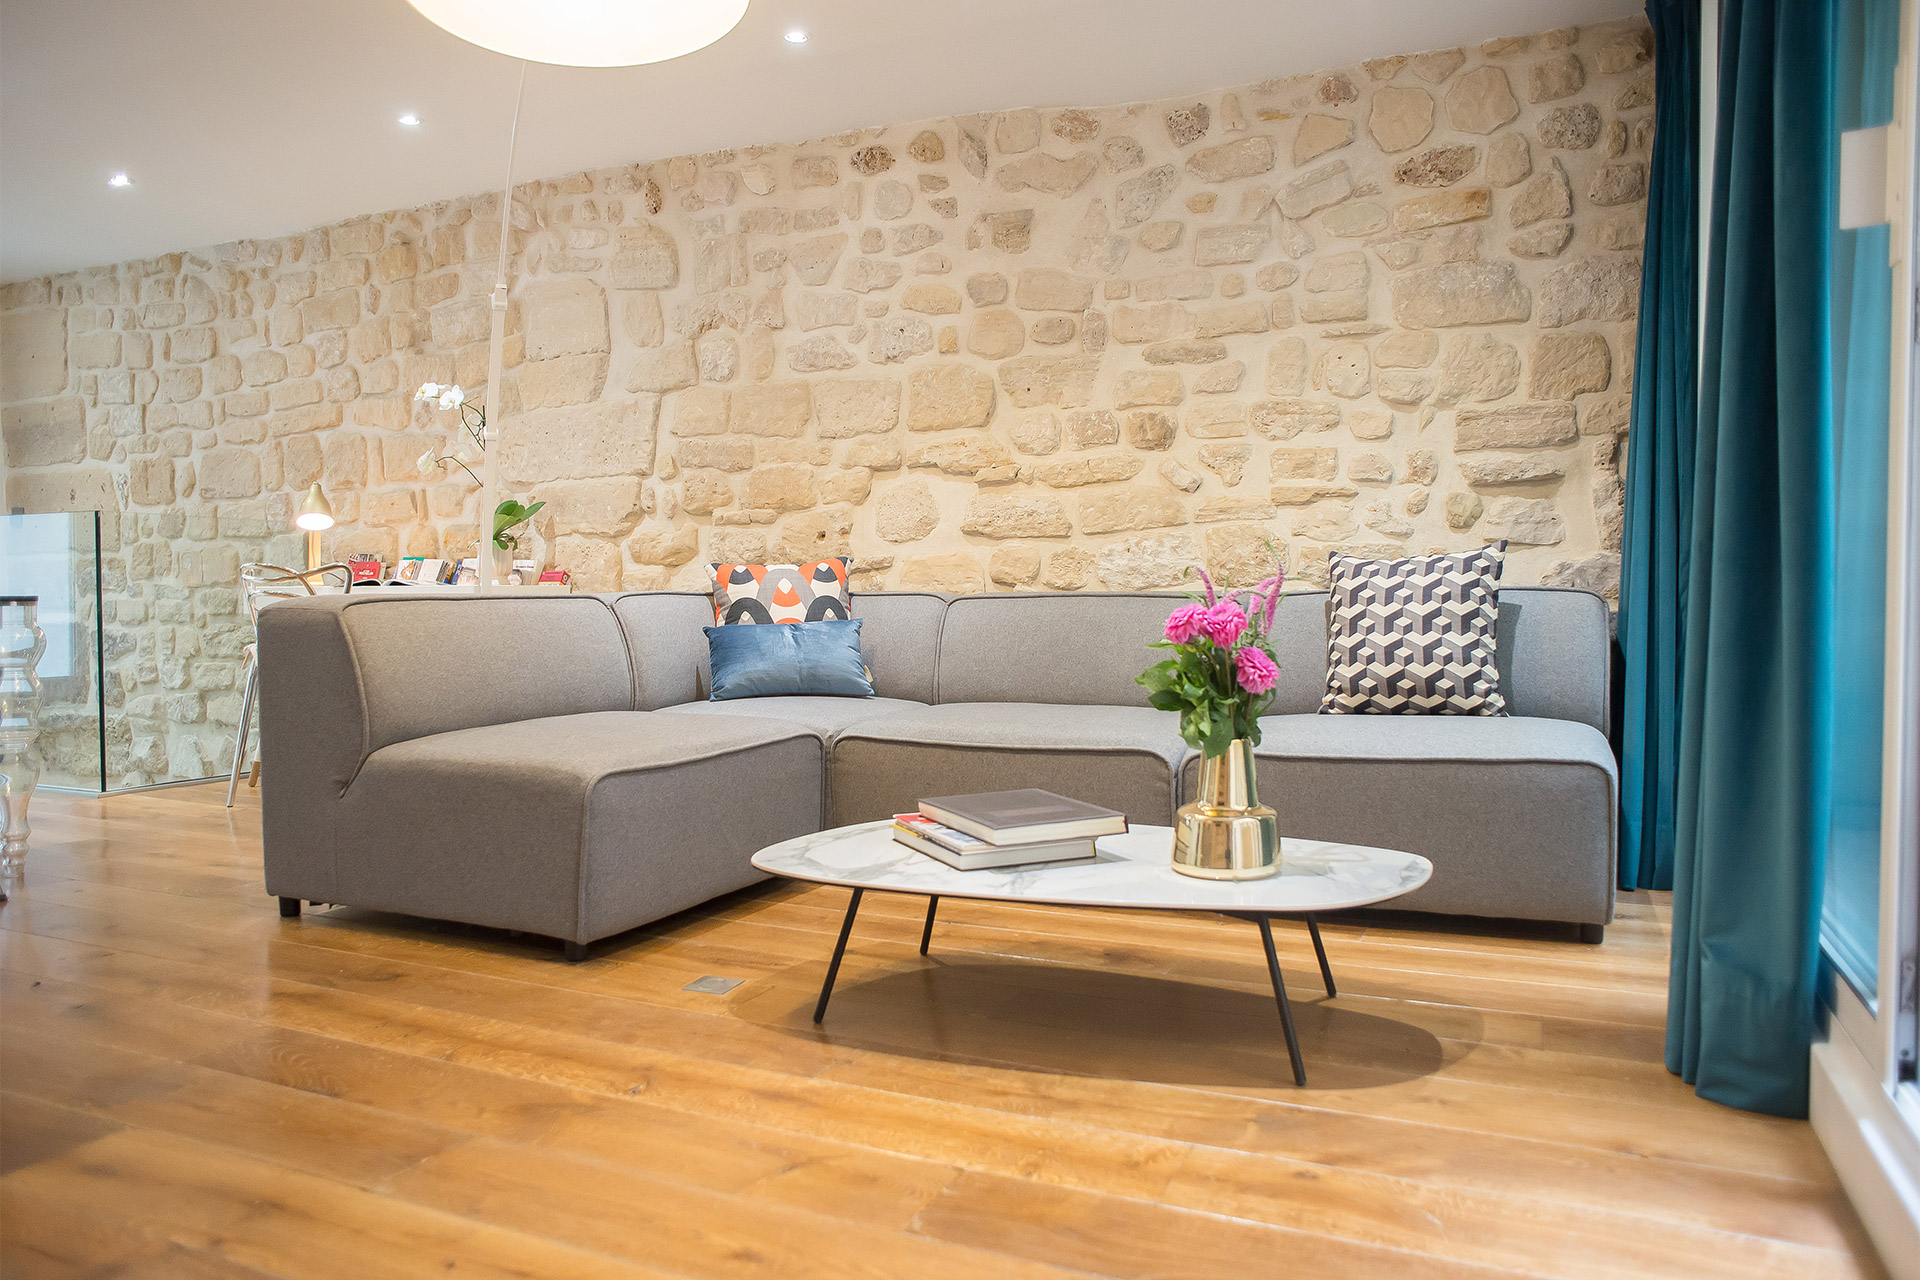 Large modern sofa and armchairs for casual entertaining in the Lascombes Paris Perfect rental